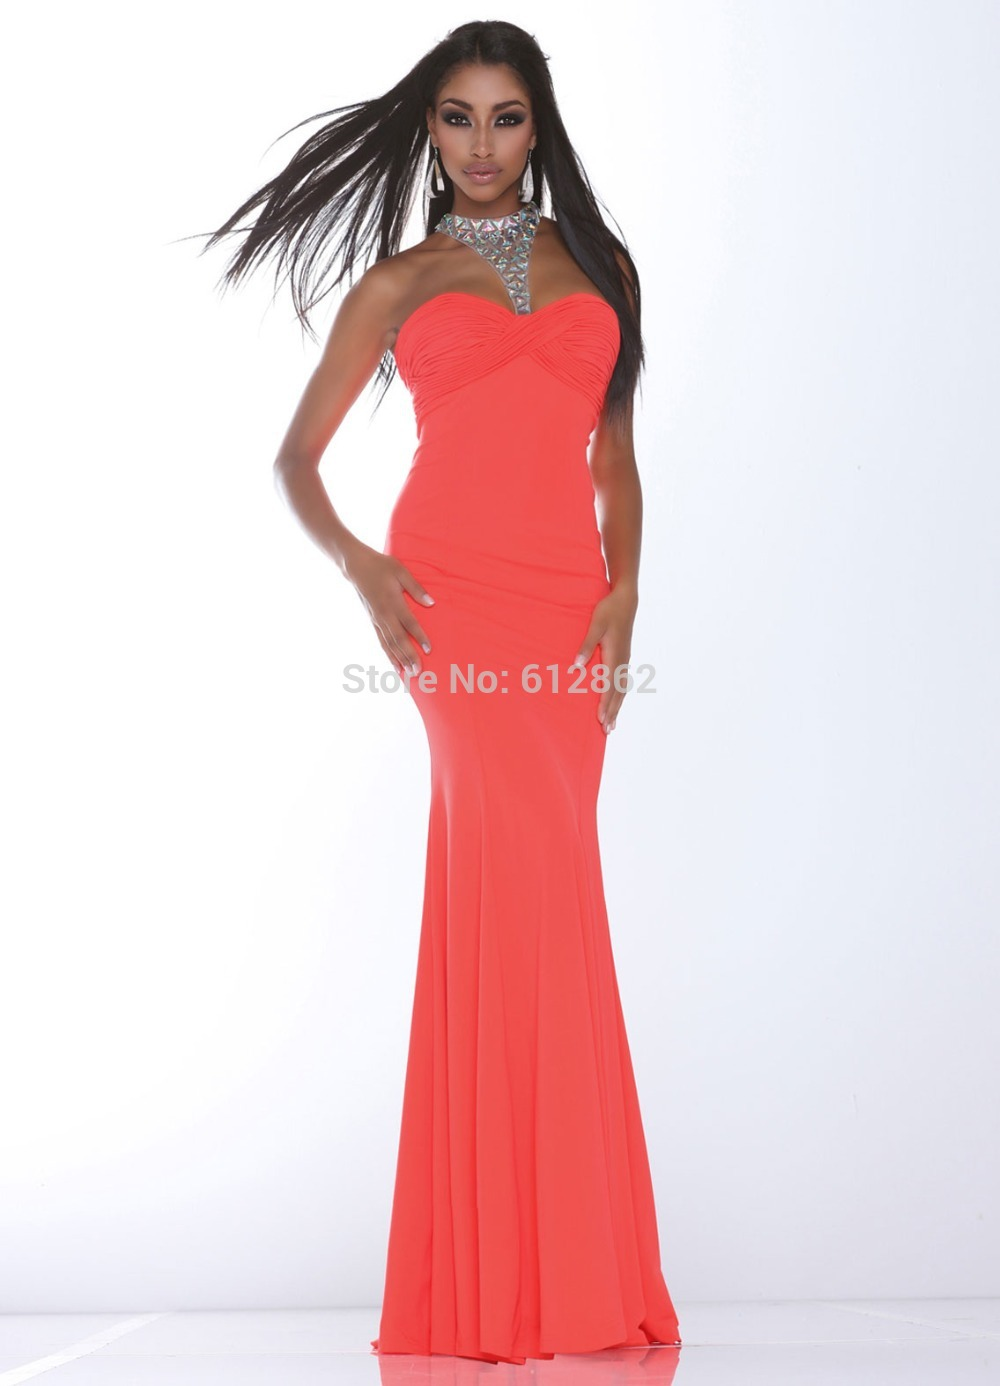 Long Tight Prom Dresses - Dress Yp